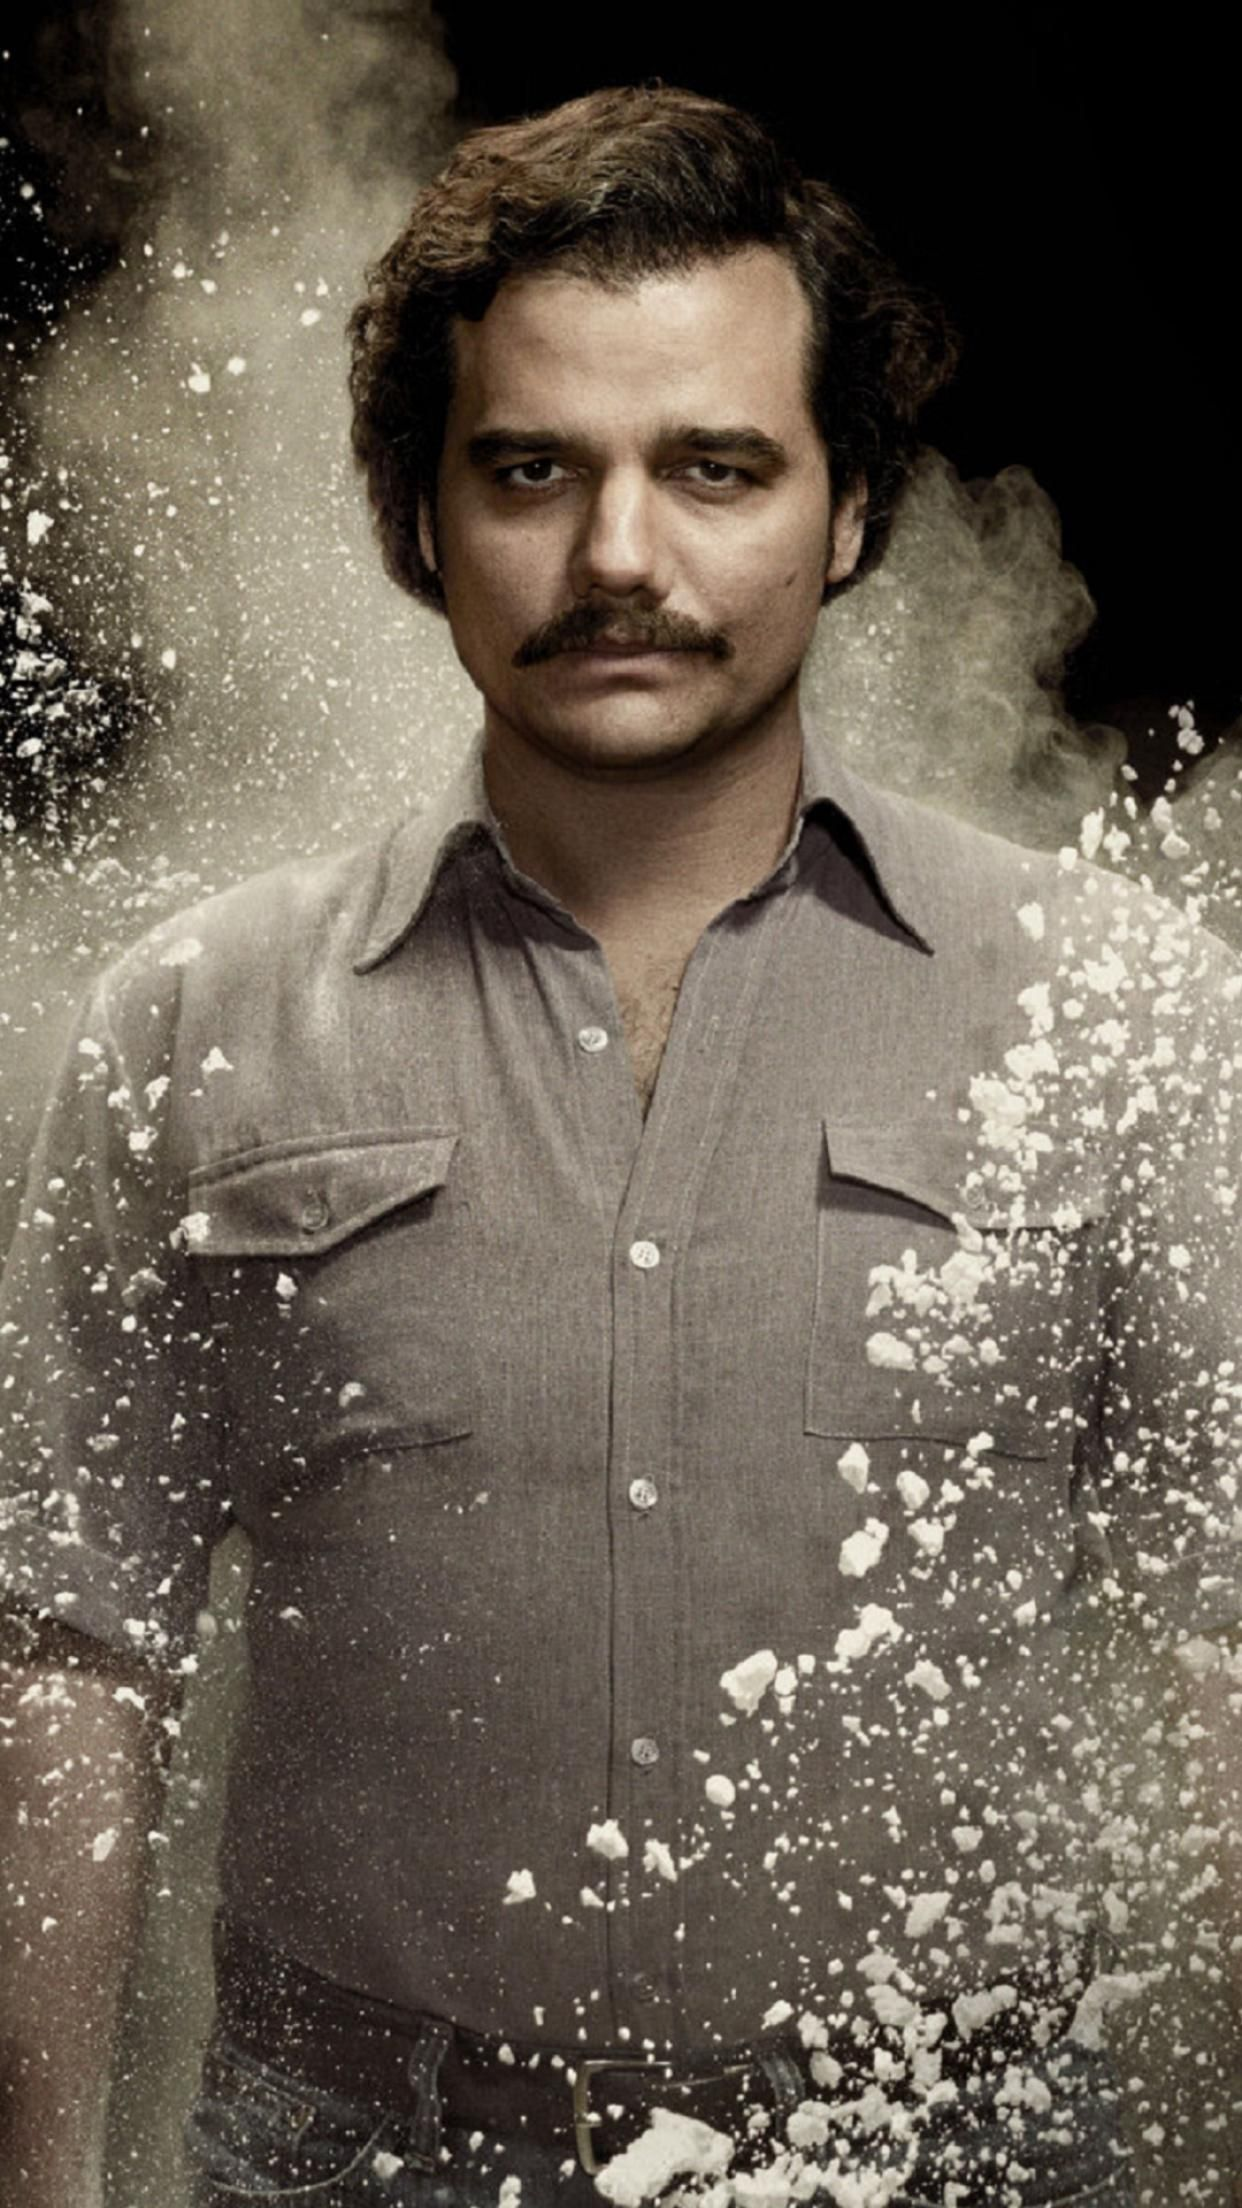 Narcos Netflix Series In 2019 Narcos Wallpaper Pablo